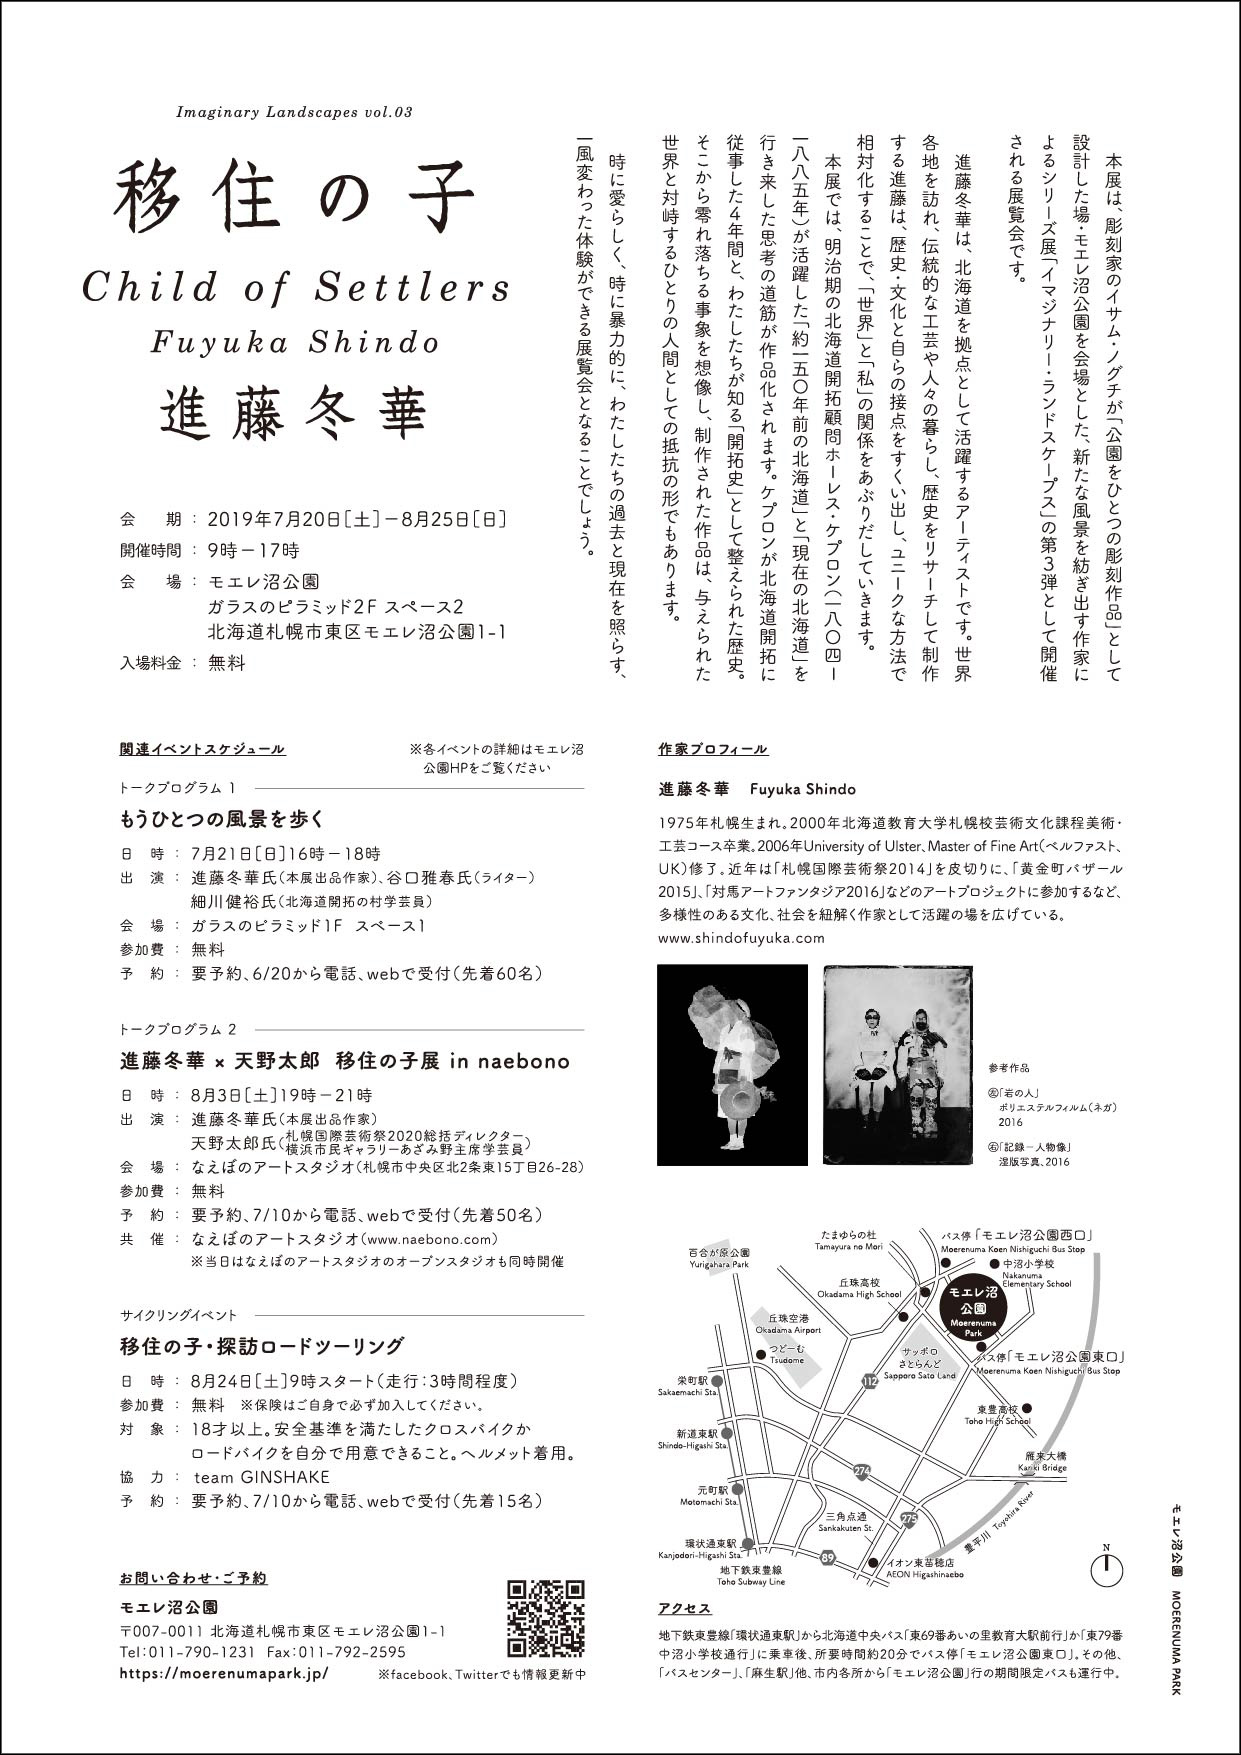 child_of_settlers-チラシ裏面